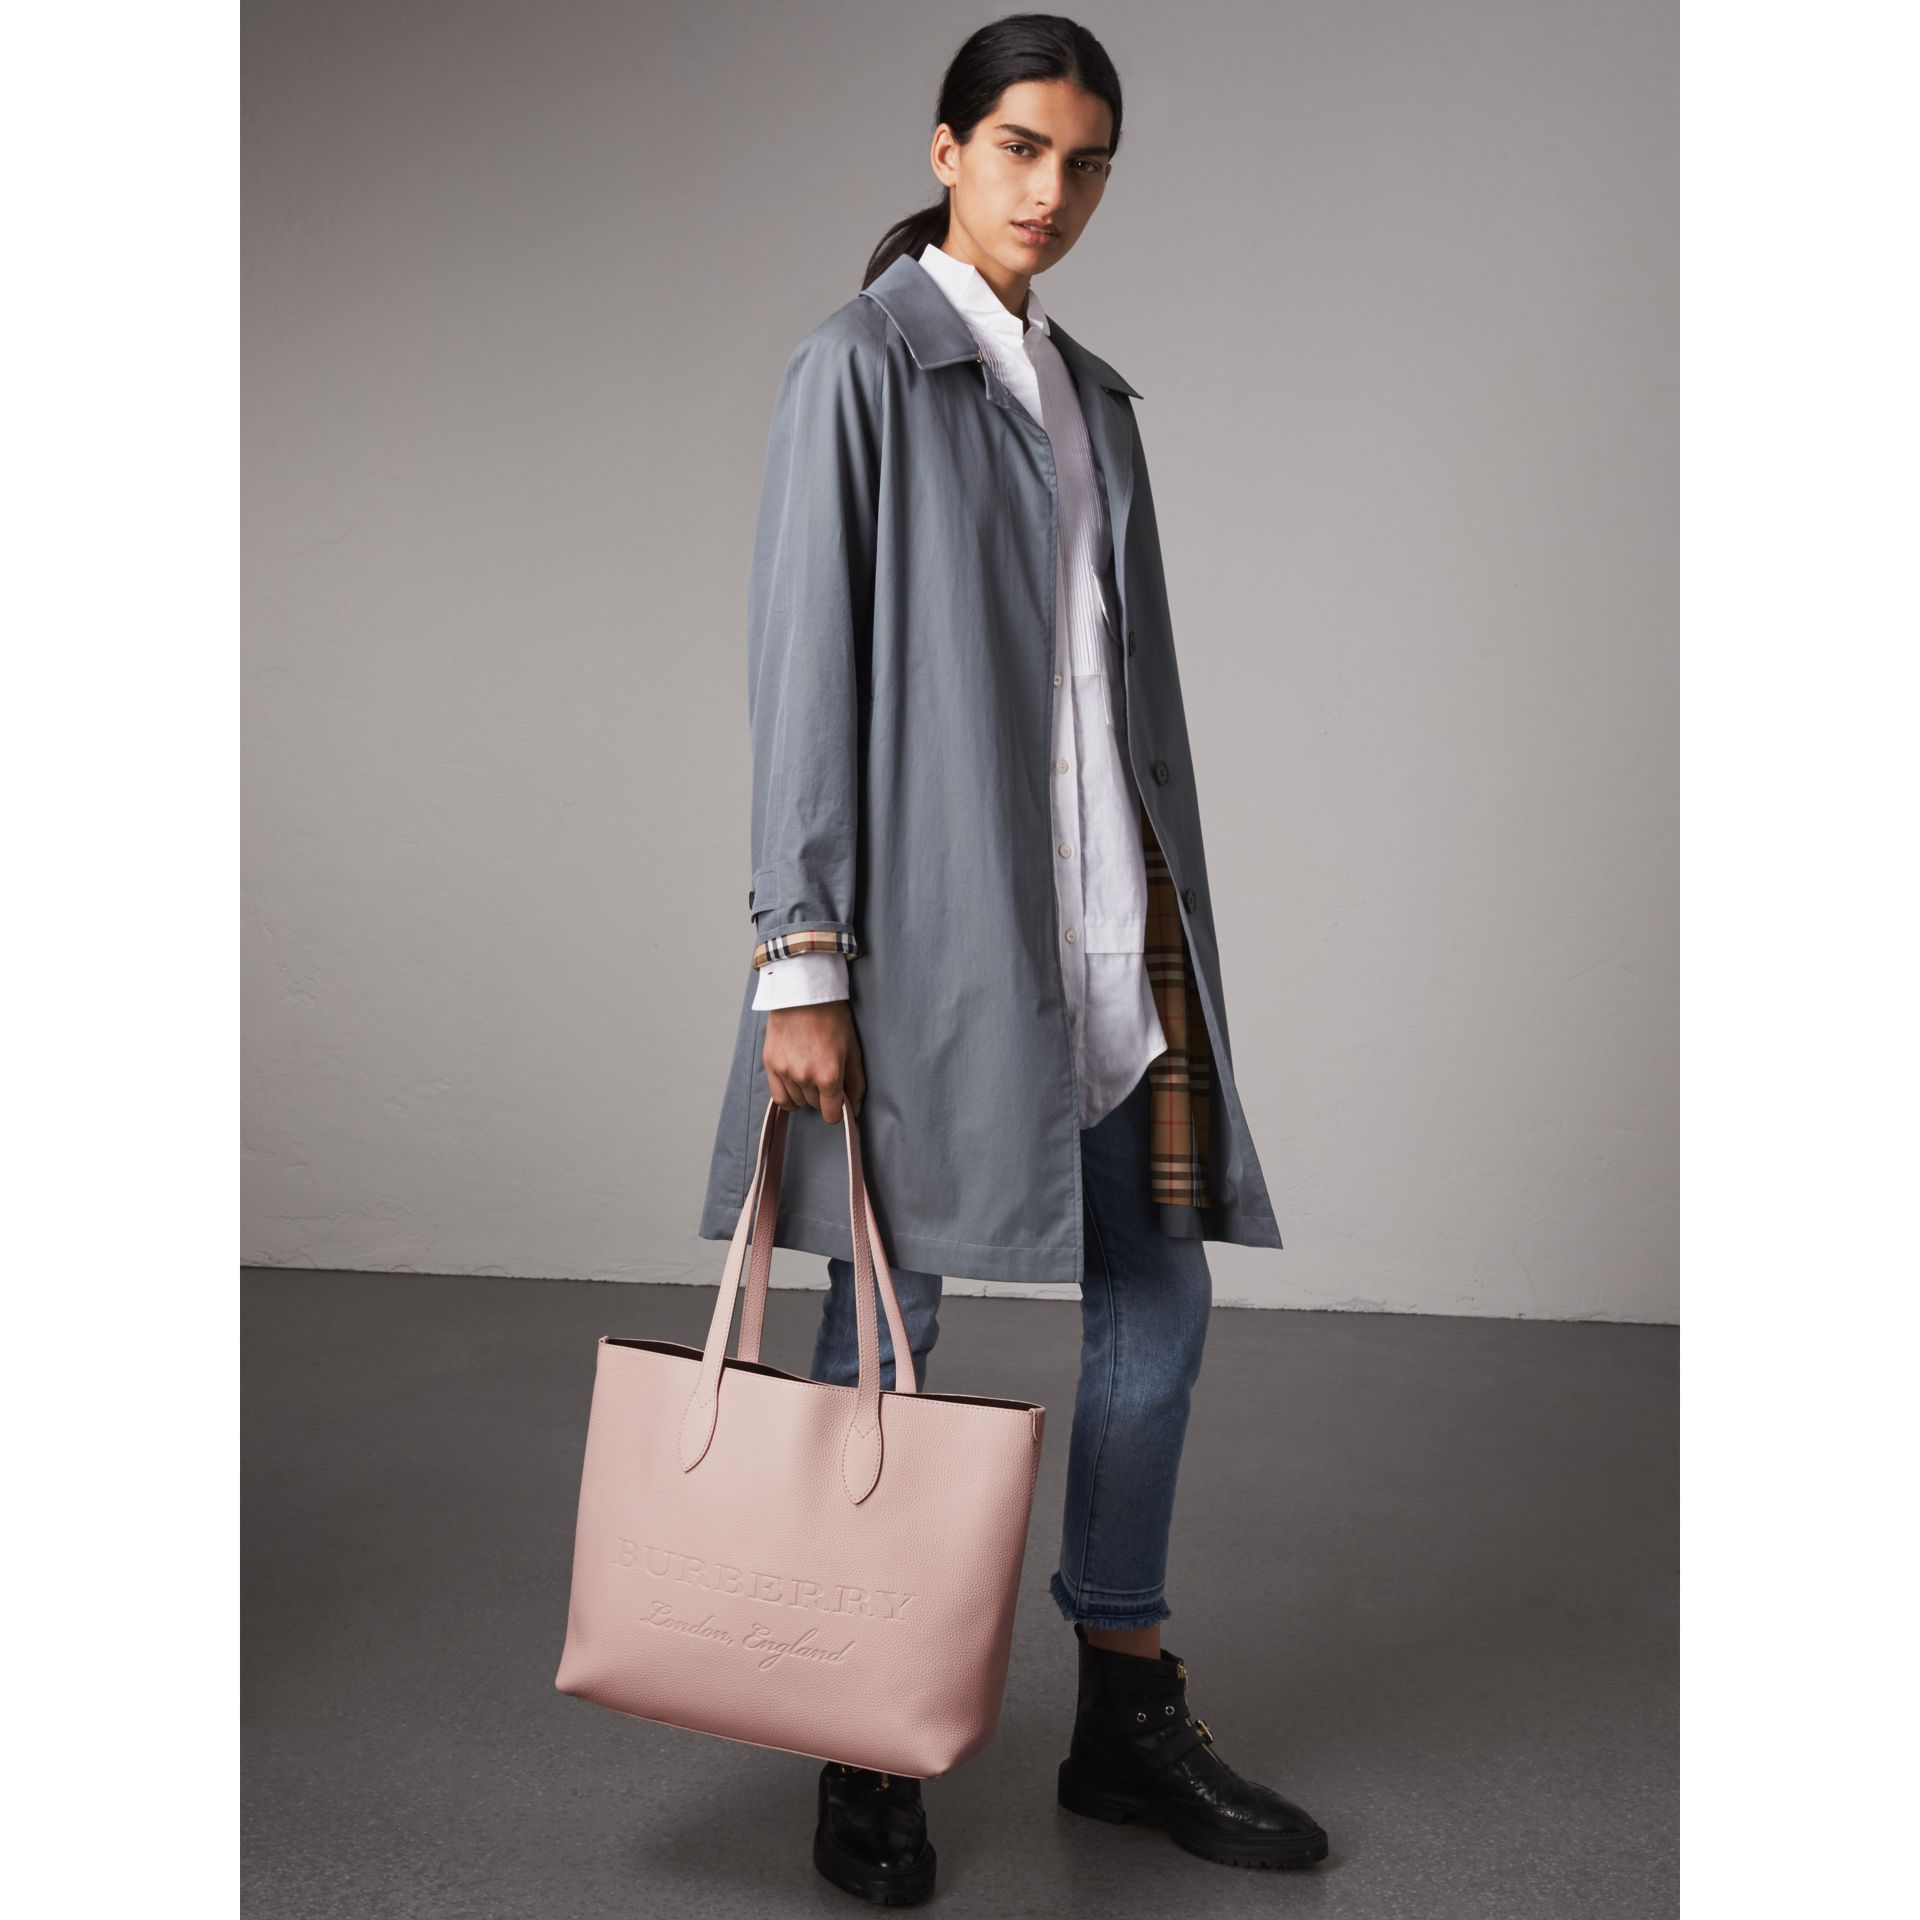 Sac tote en cuir estampé (Rose Platiné Pâle) - Femme | Burberry - photo de la galerie 2